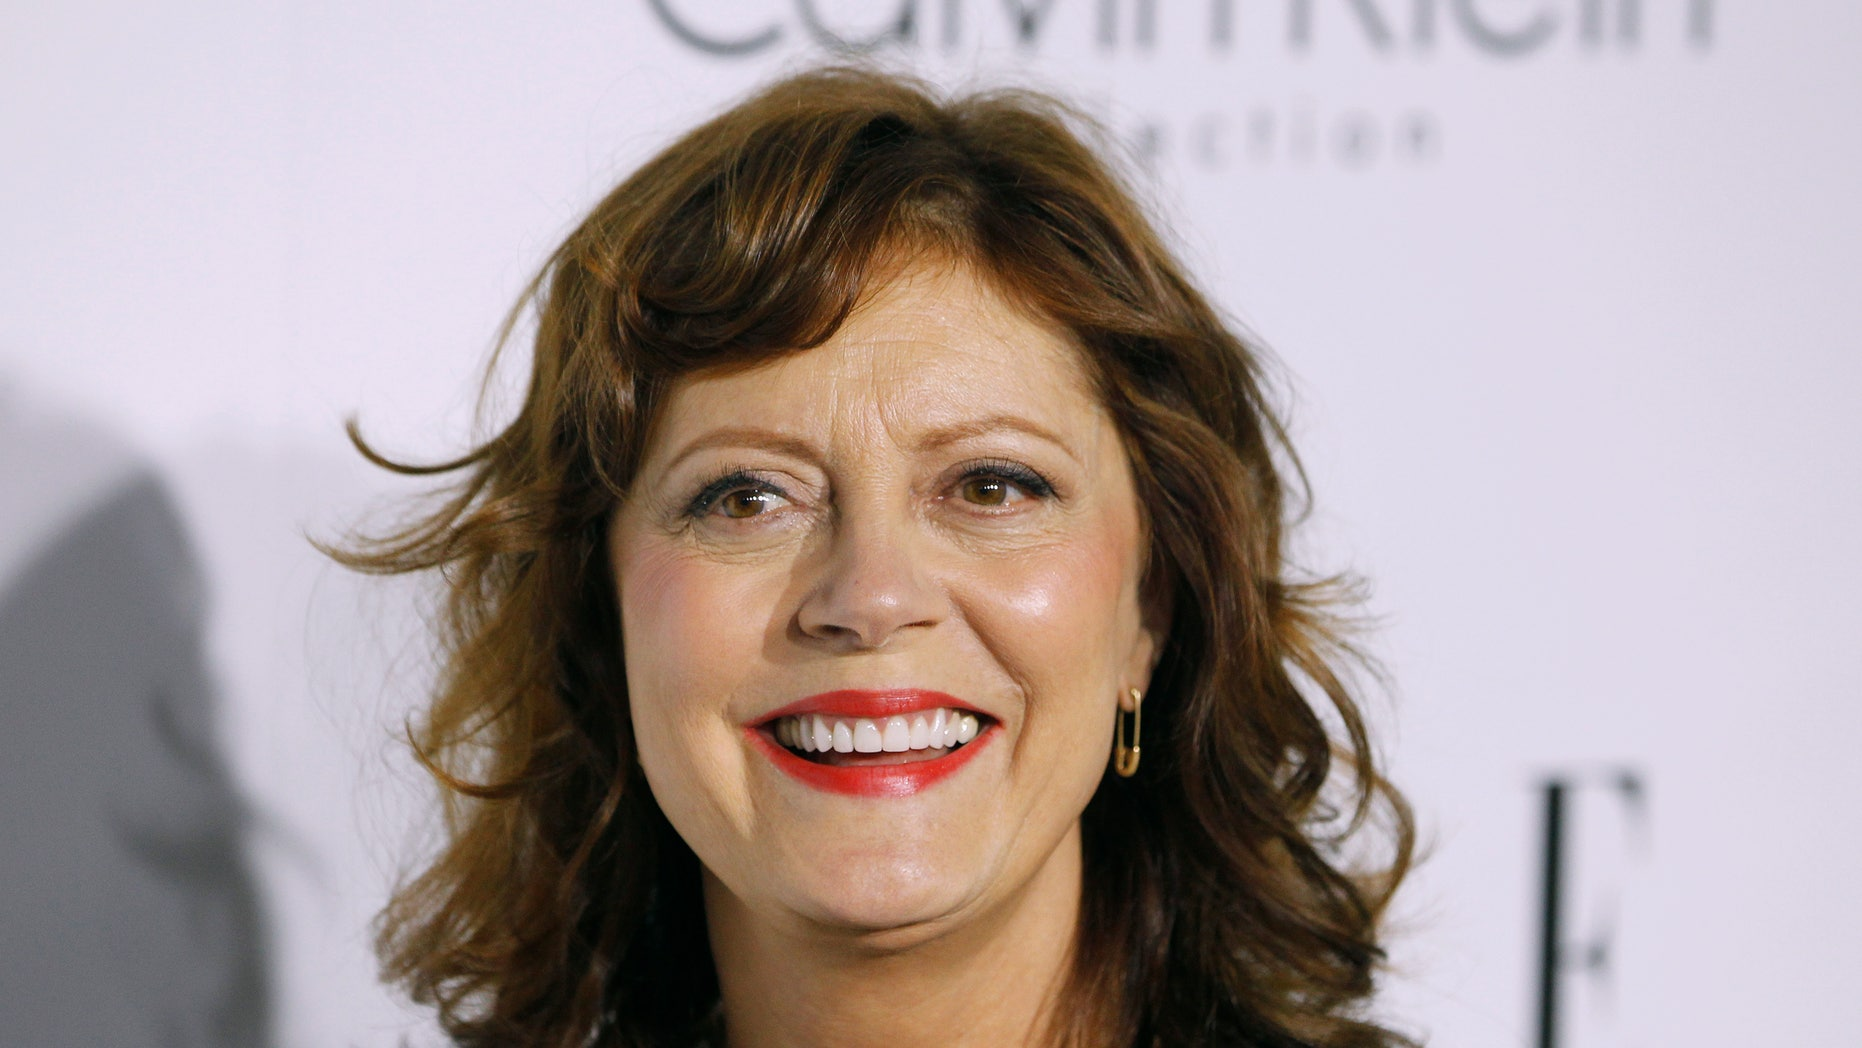 October 15, 2012. Honoree and Oscar winner Susan Sarandon poses as she arrives at the 19th Annual ELLE Women in Hollywood dinner in Beverly Hills, Callifornia.